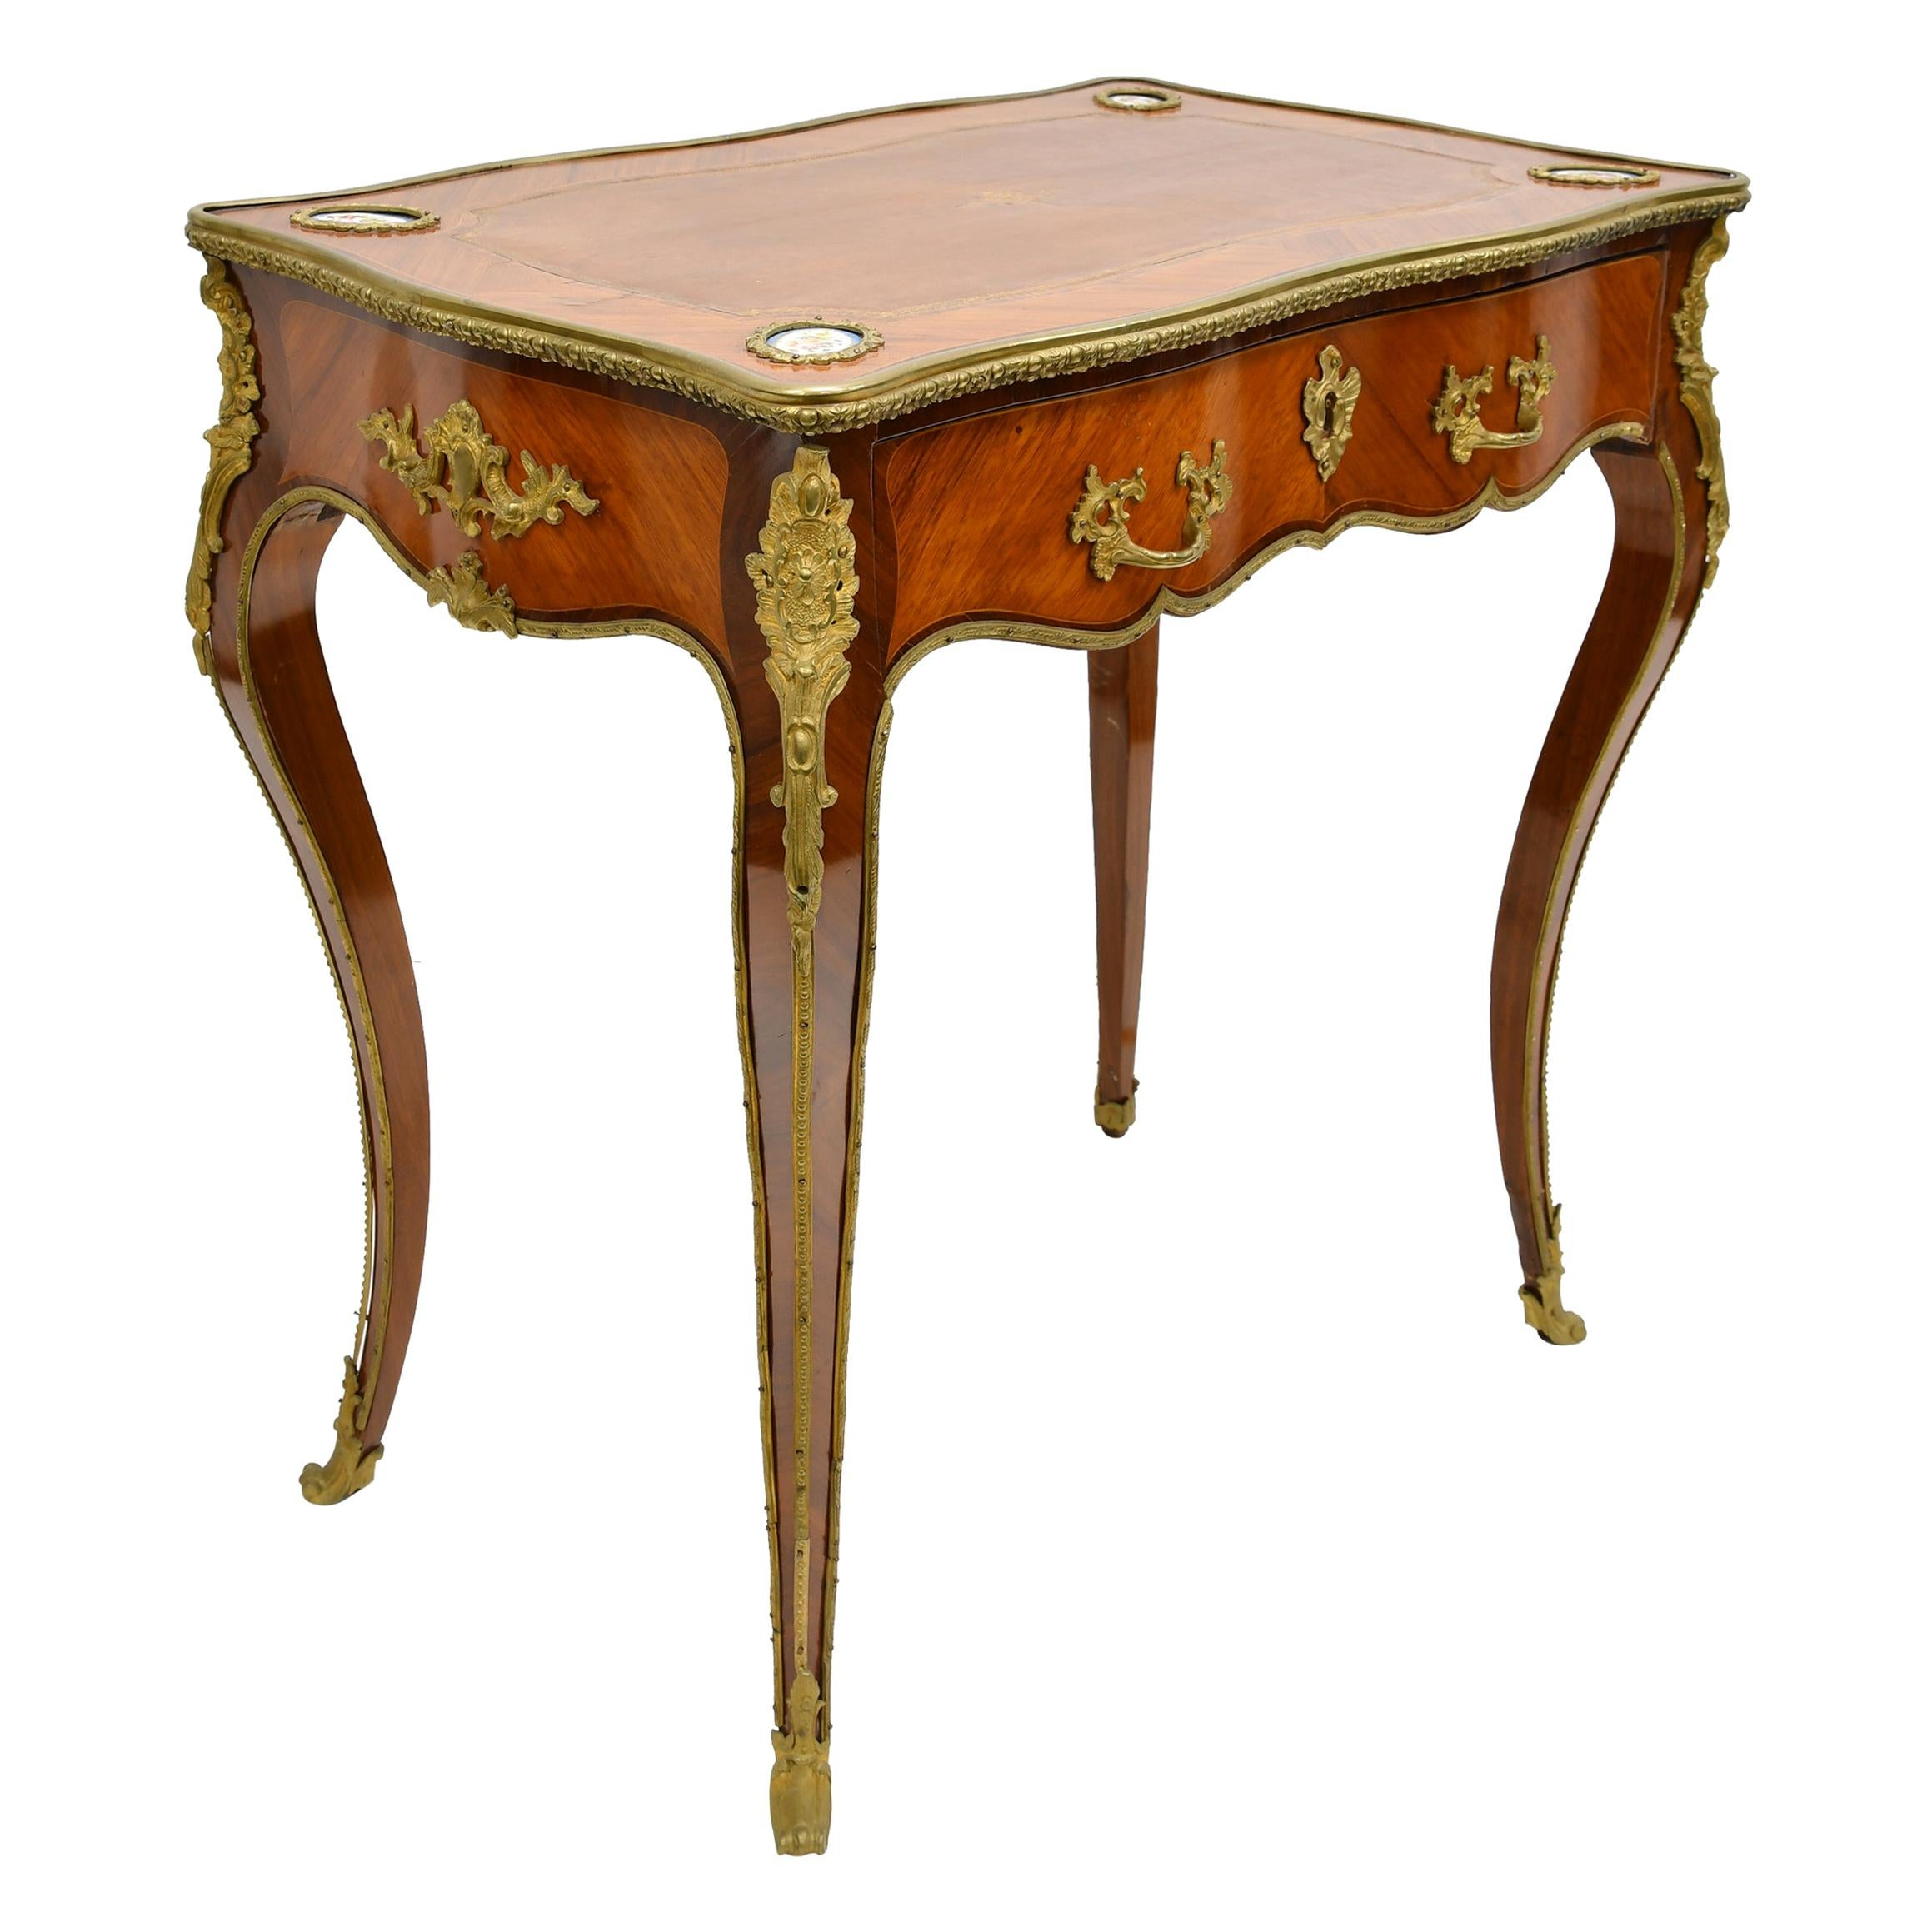 French Louis XV Style Writing or Side Table with Parquetry, Leather and Ormolu